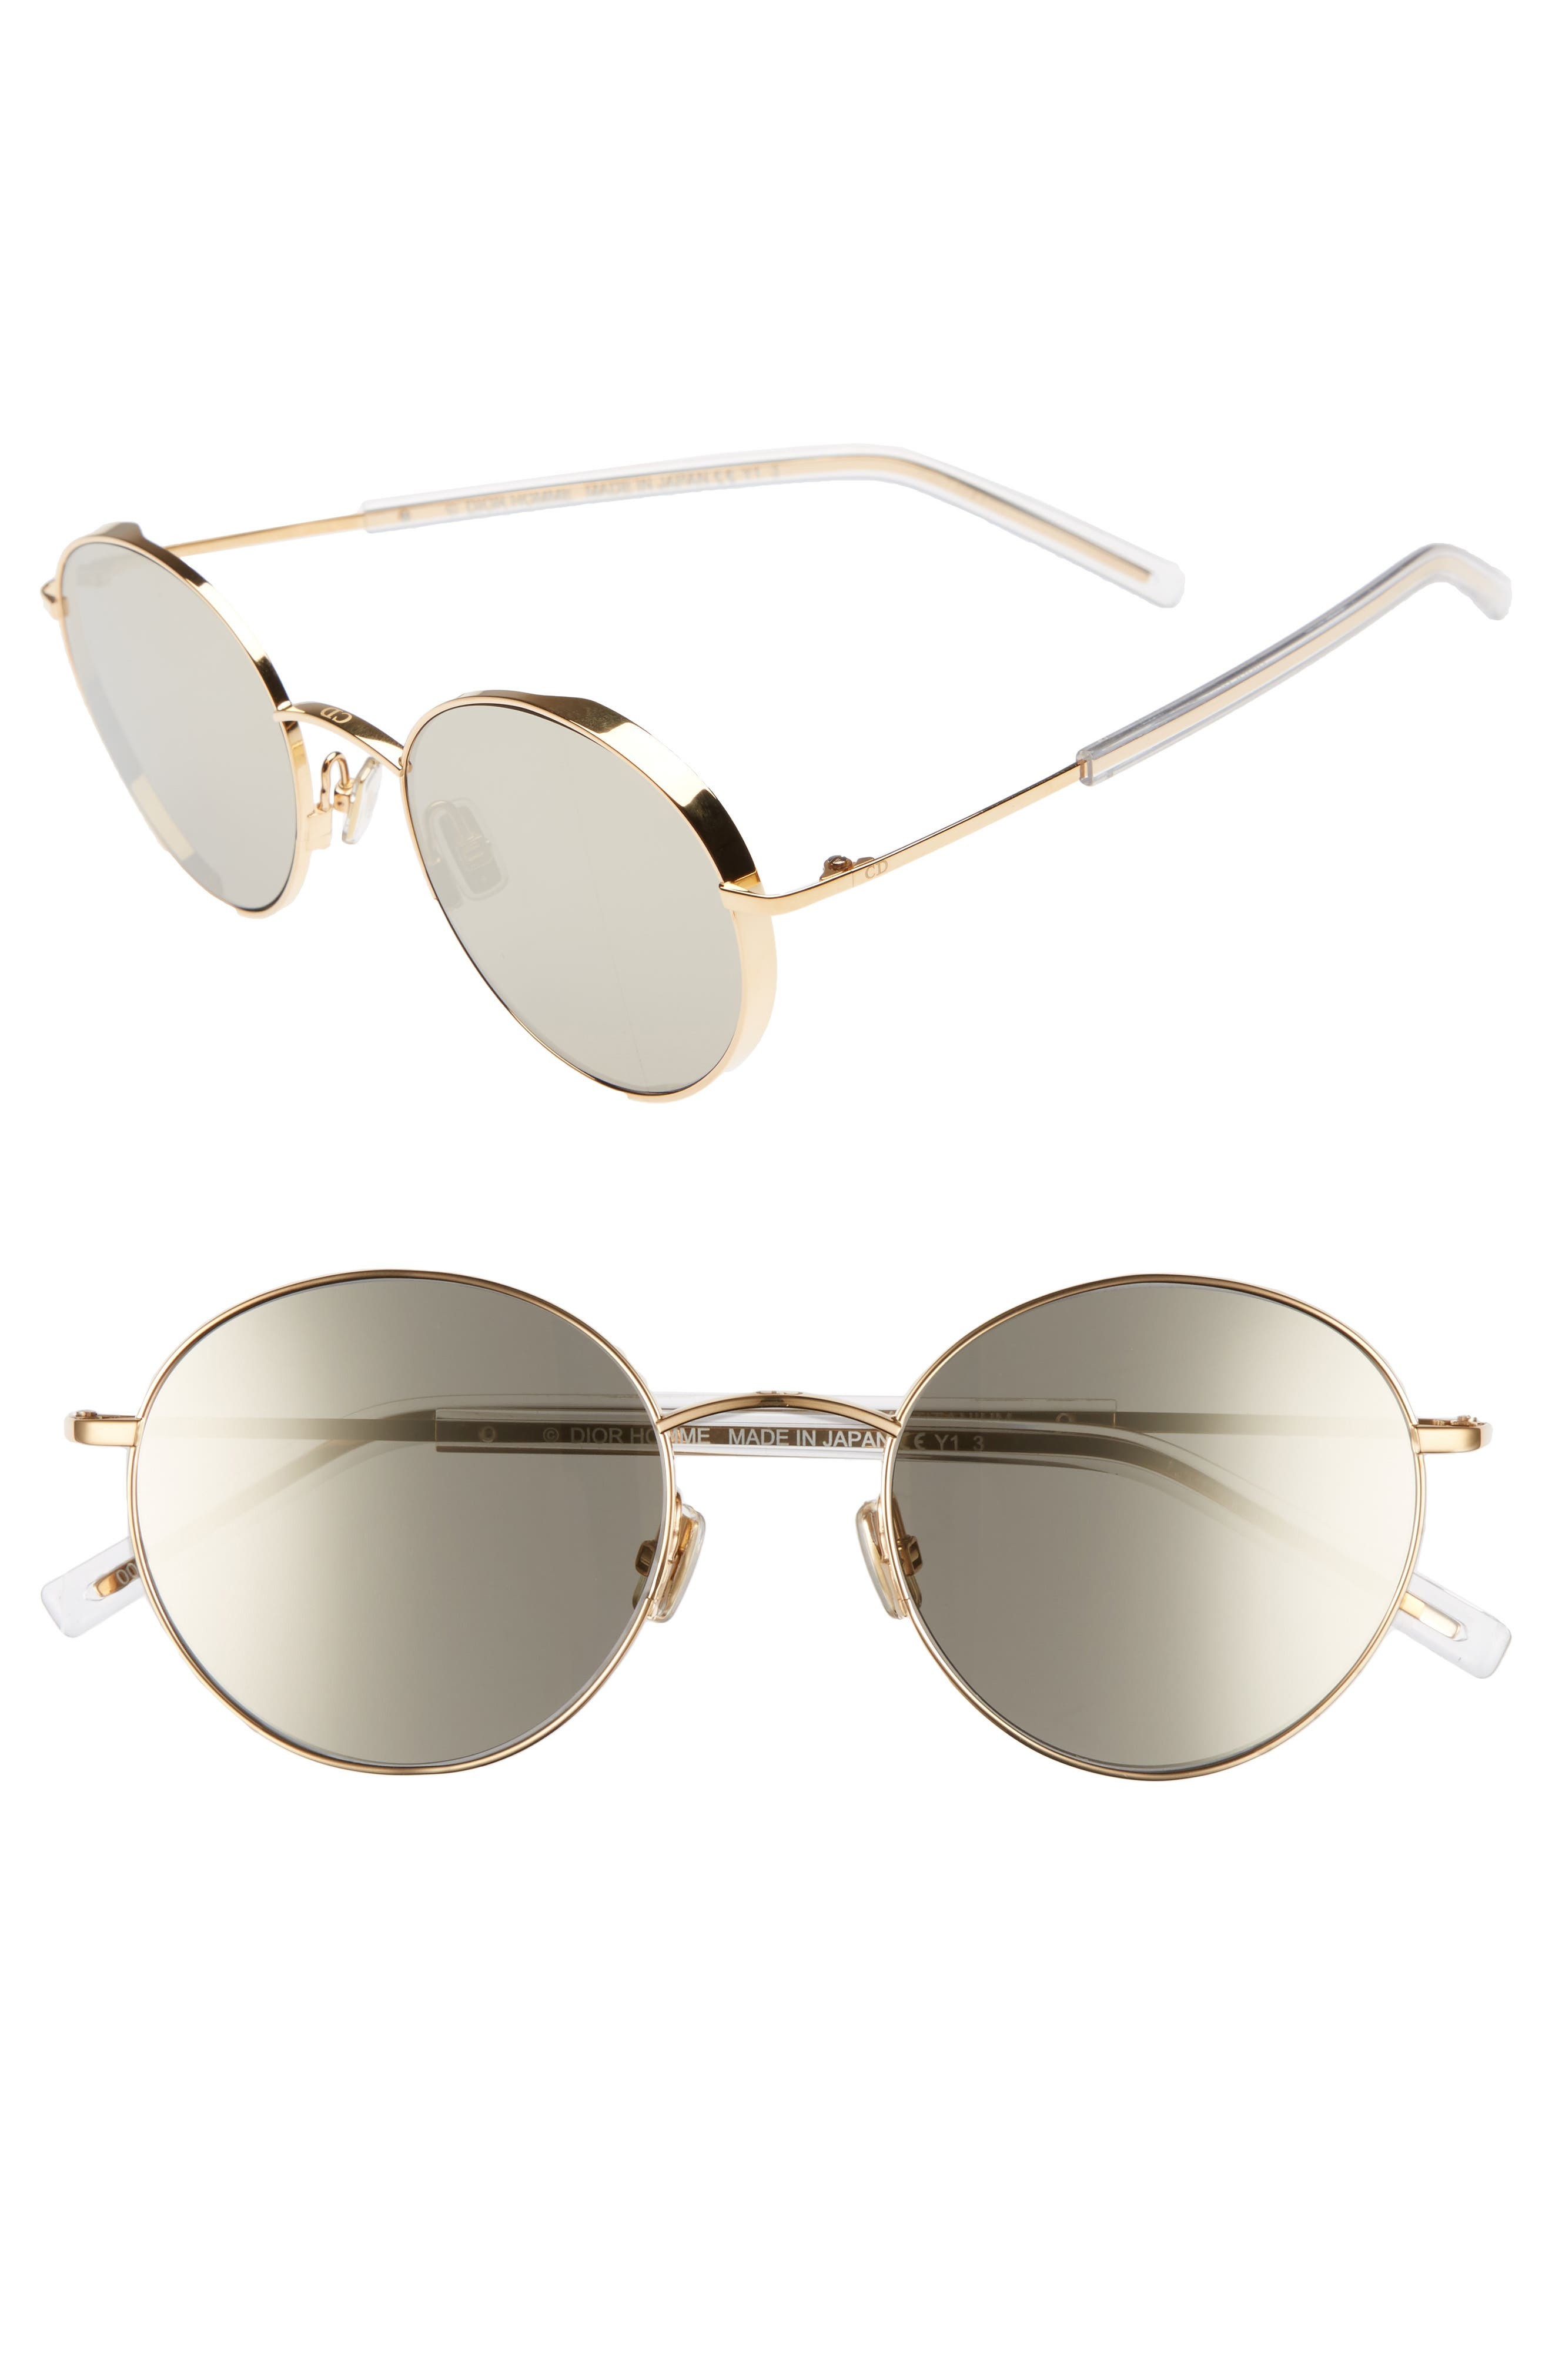 DIOR HOMME Edgy 52Mm Sunglasses in Rose Gold